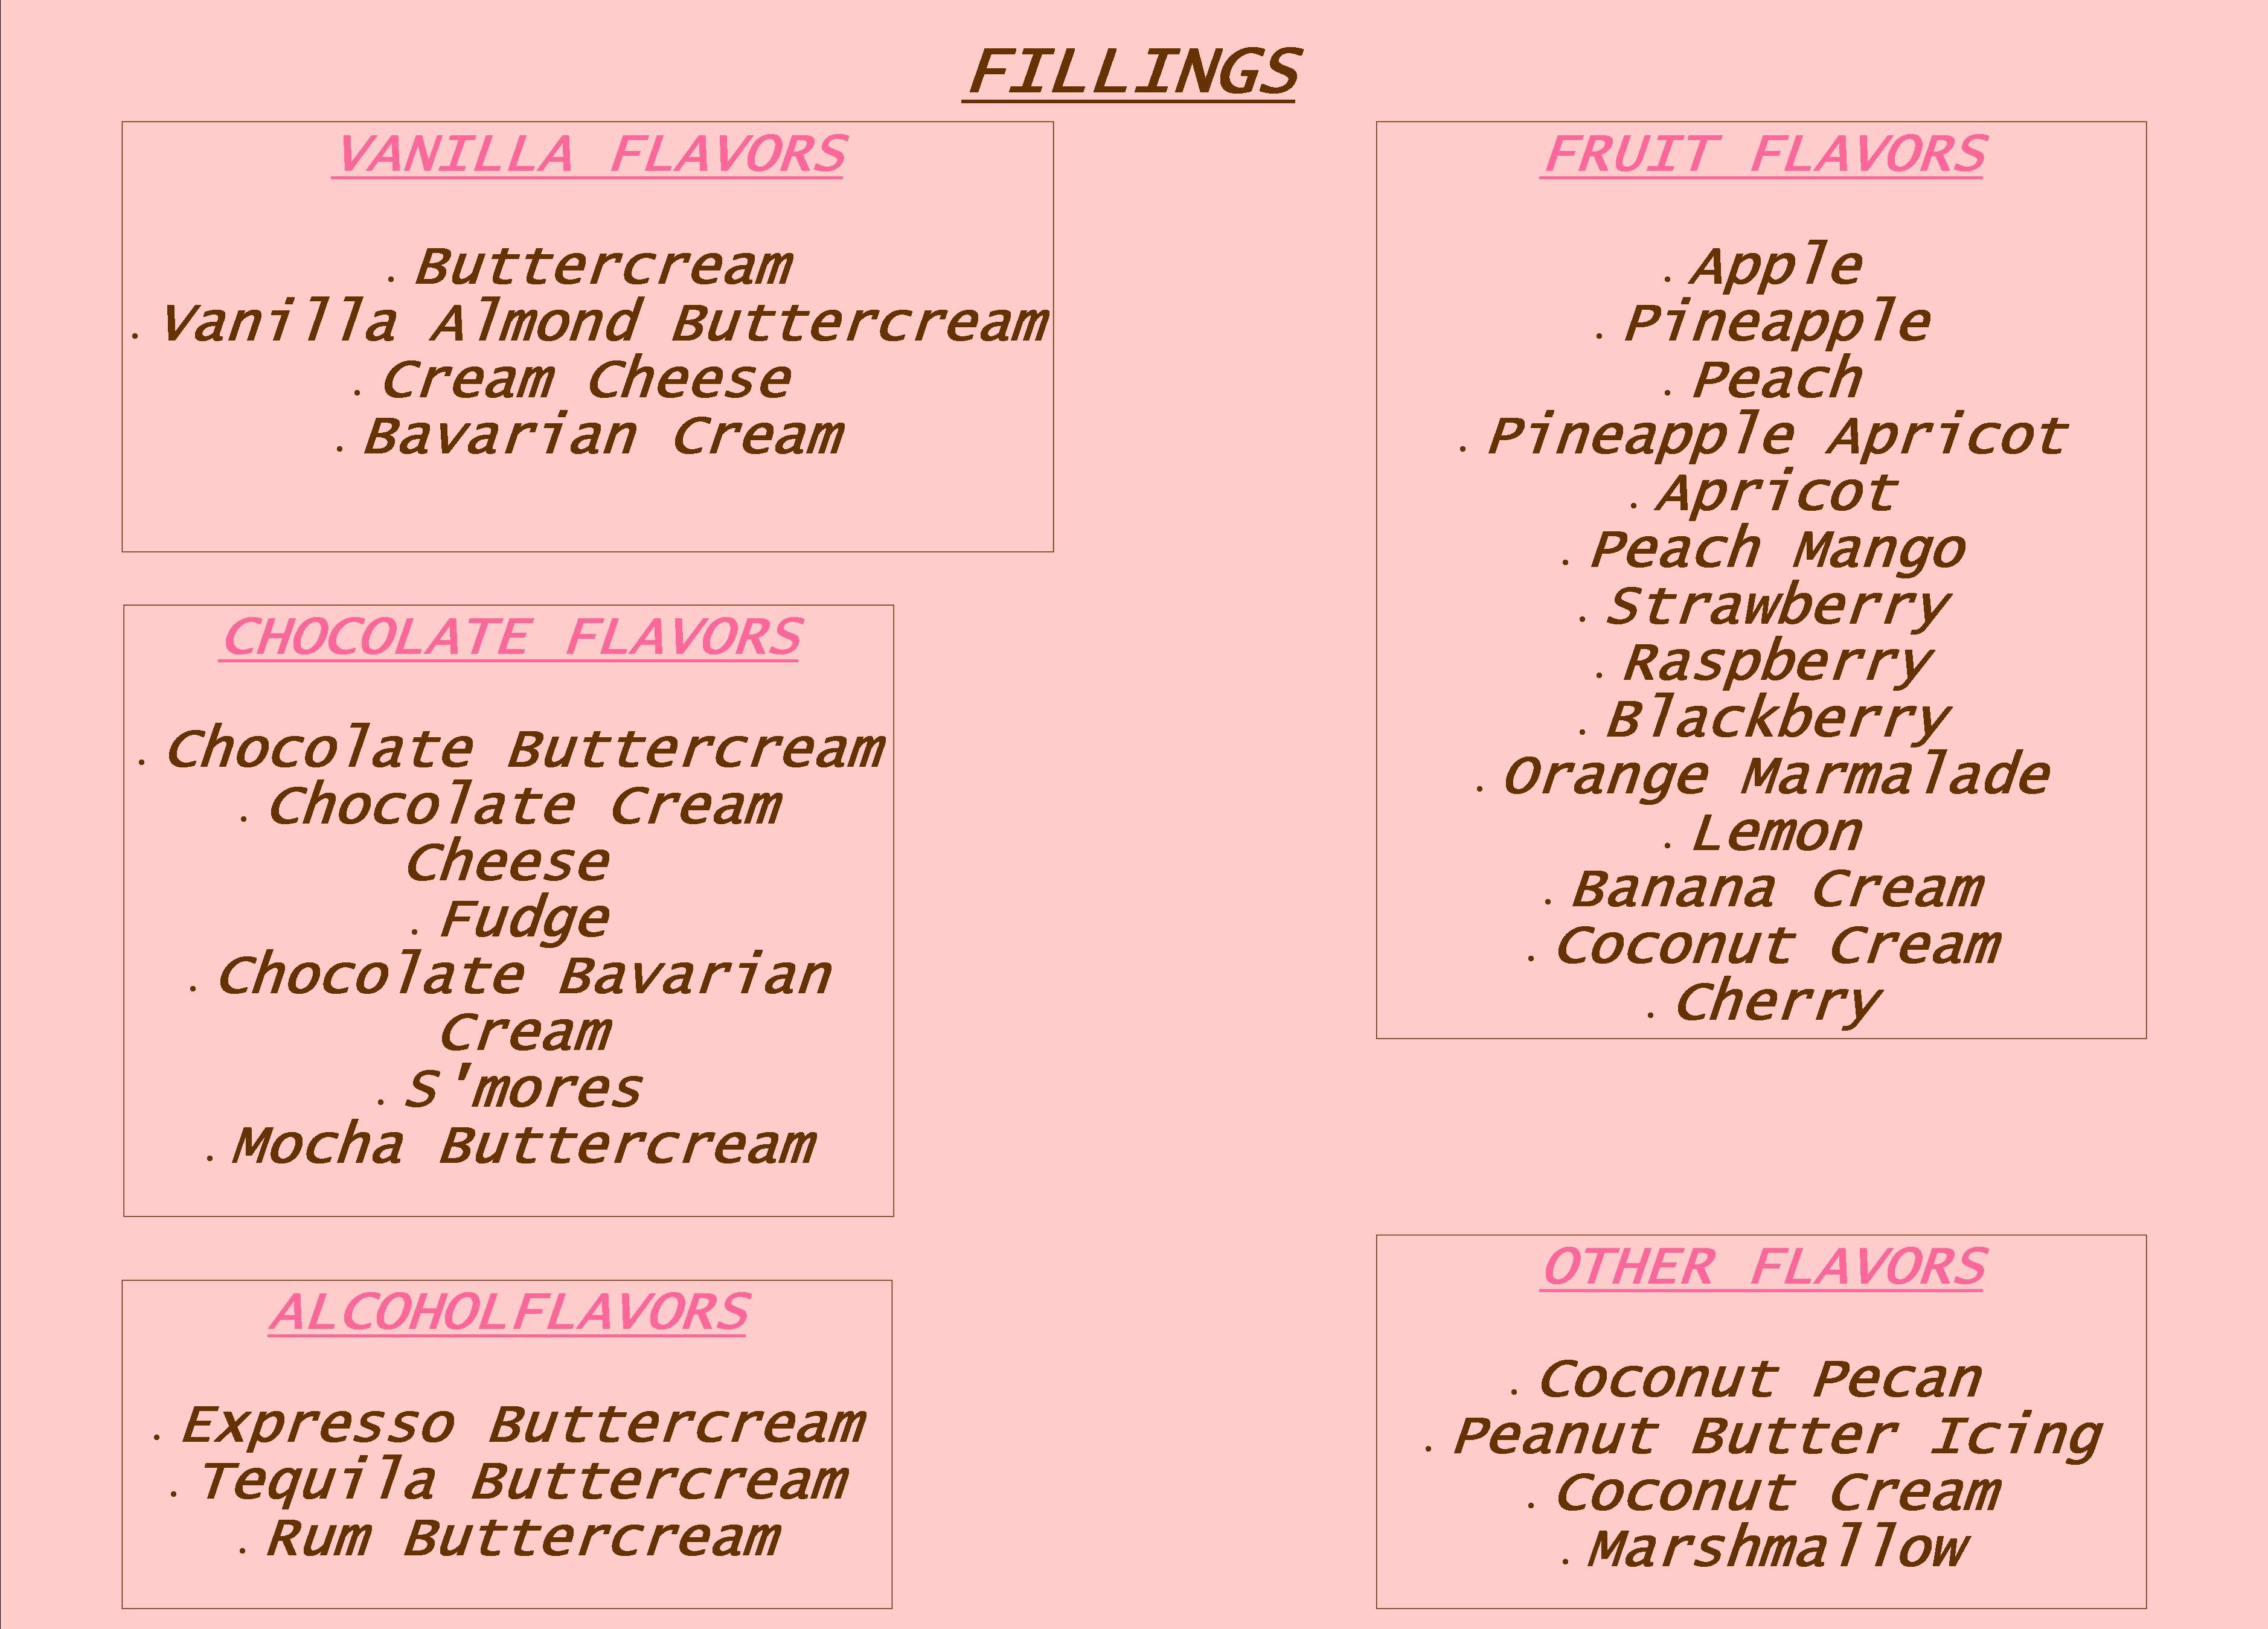 Wedding Cakes Flavors And Fillings  wedding cake flavors and fillings